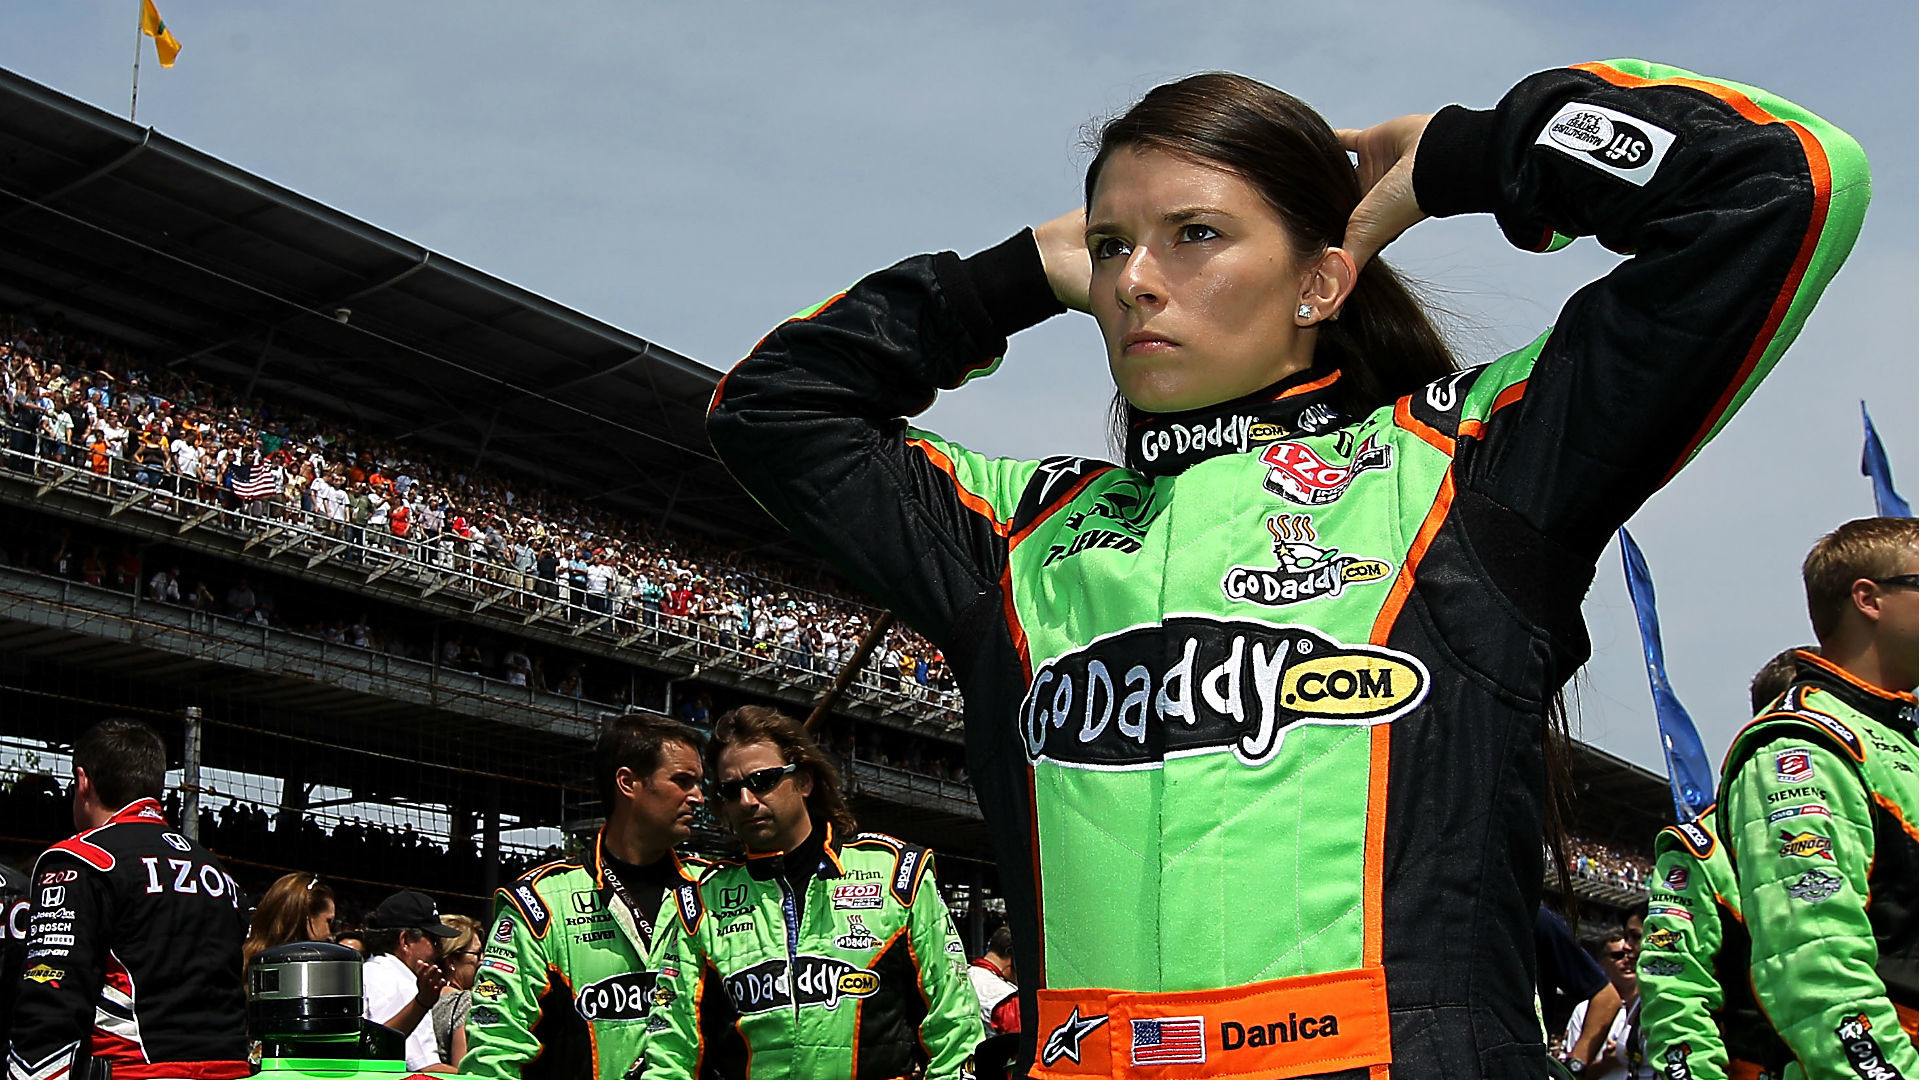 1920x1080 Danica Patrick's last Indy 500 start was in 2011. (Getty Images)